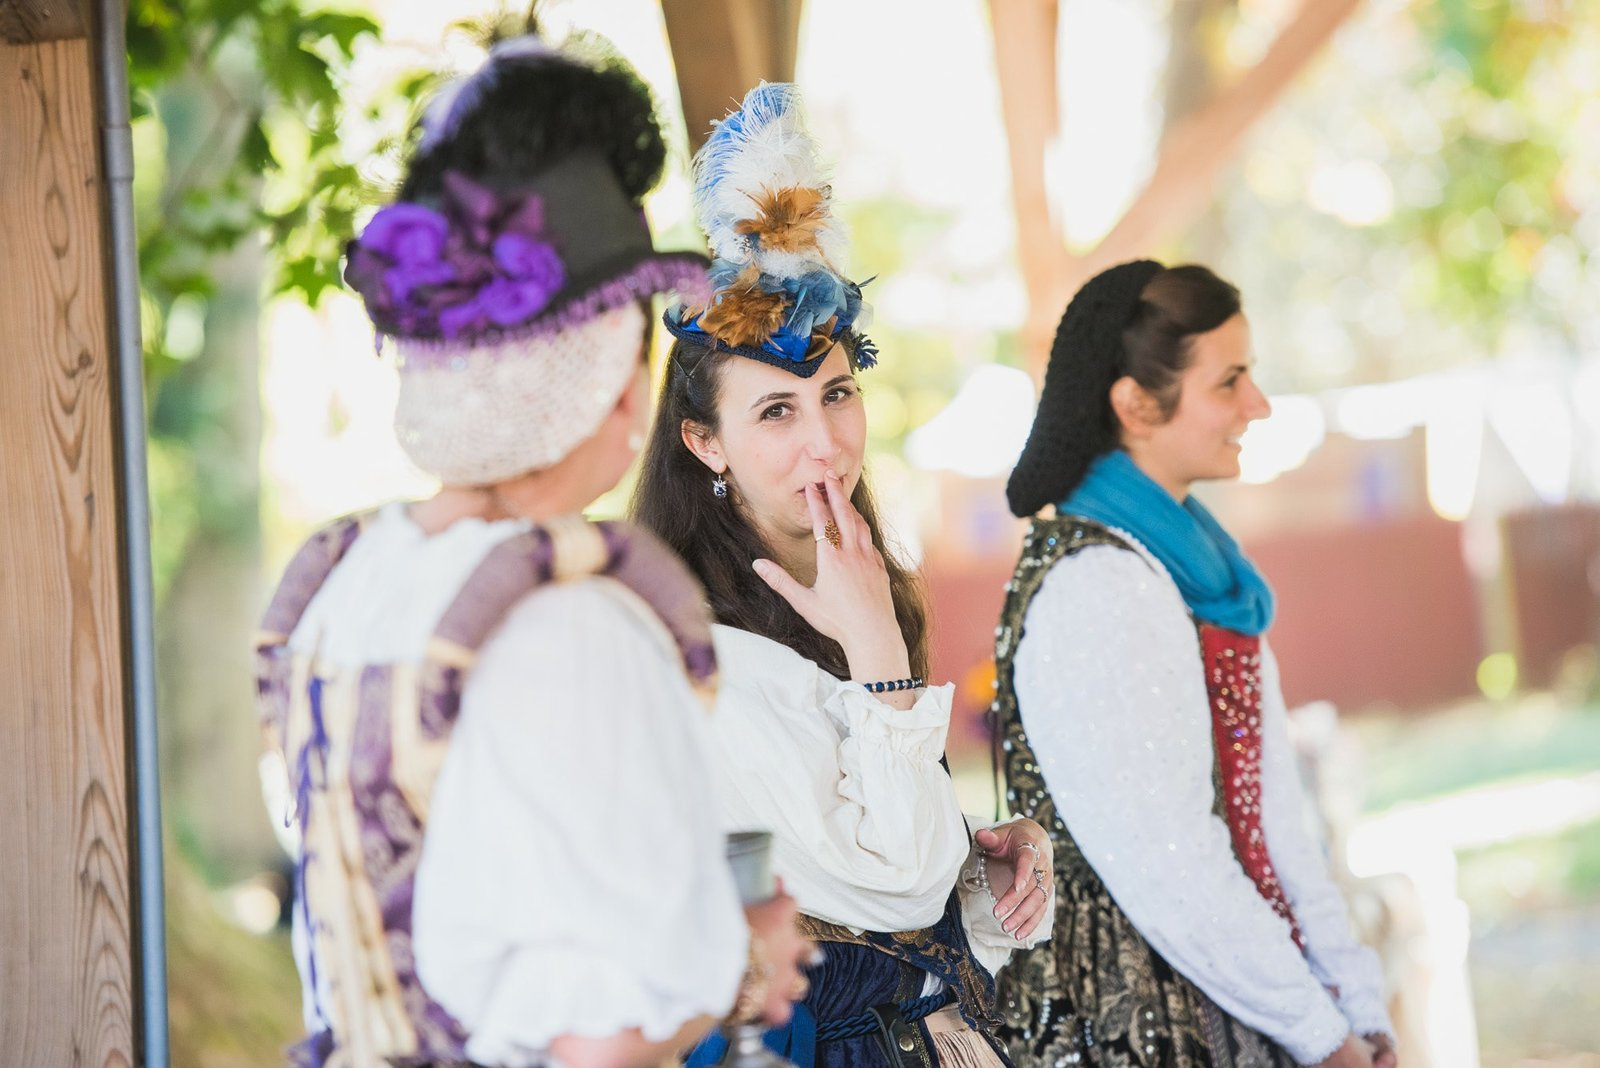 PA_Renaissance_Faire_Wedding124